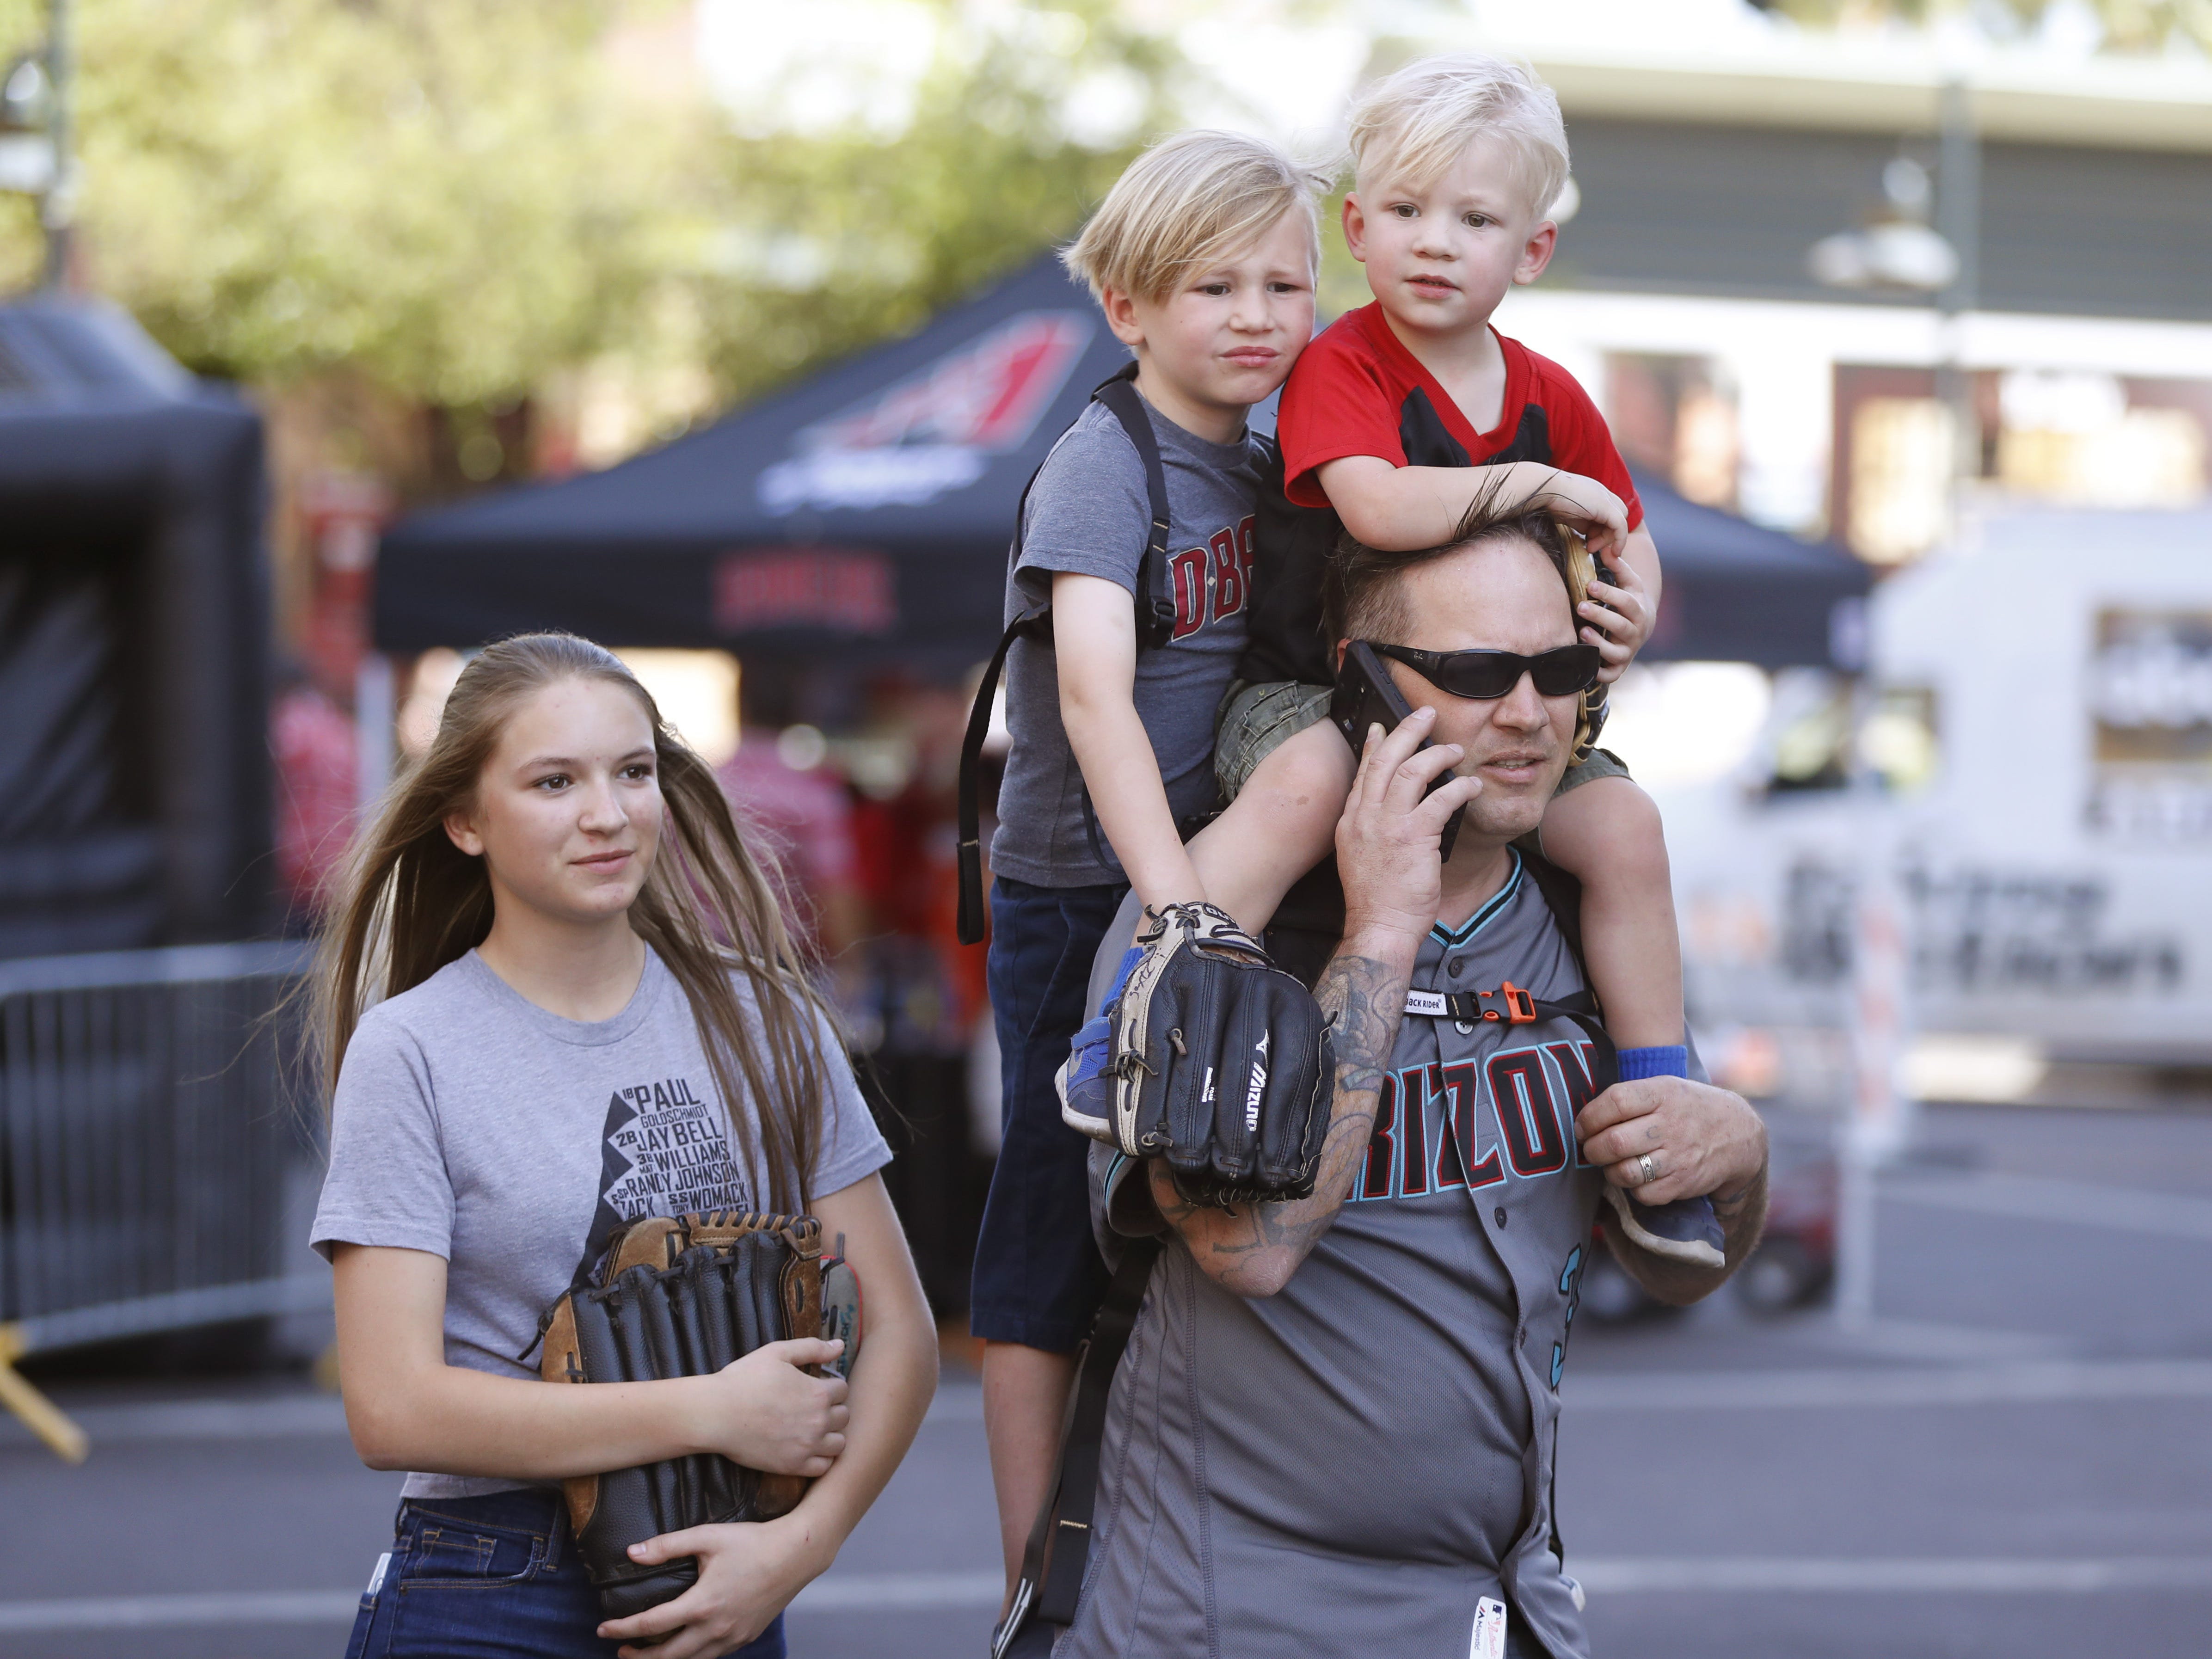 Patrick Flannagan holds his sons Liam (R) and Finn on his back as they make their way outside Chase Field with Patrick's daughter Cat on the Opening Day for the Diamondbacks in Phoenix, Ariz. on April 5, 2019.